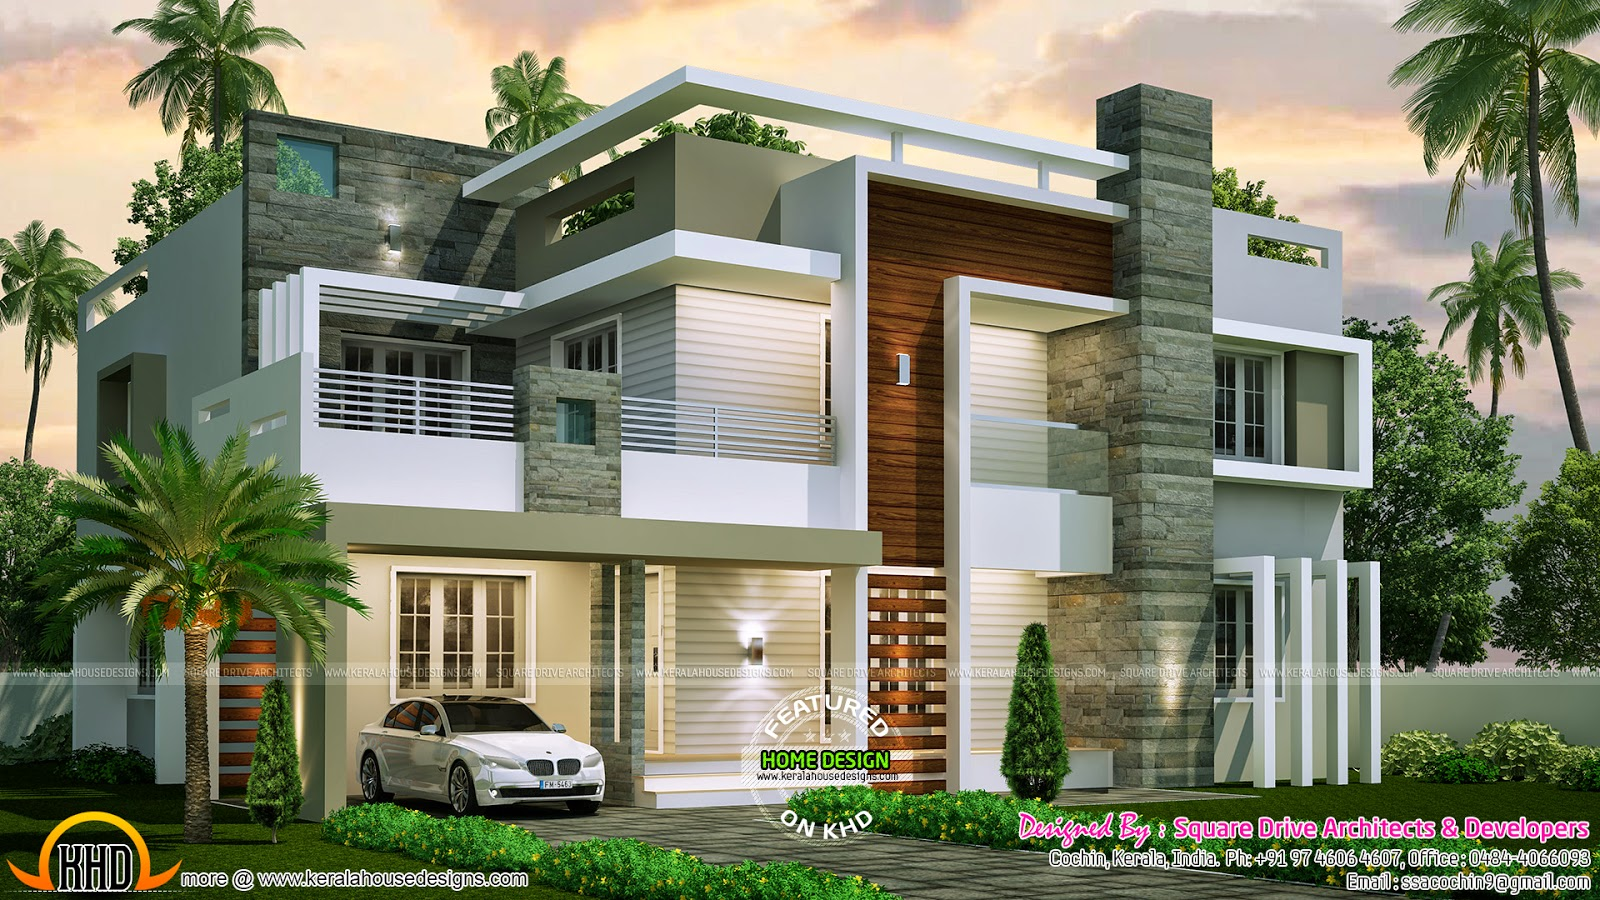 4 bedroom contemporary home design kerala home design for Indian small house design 2 bedroom